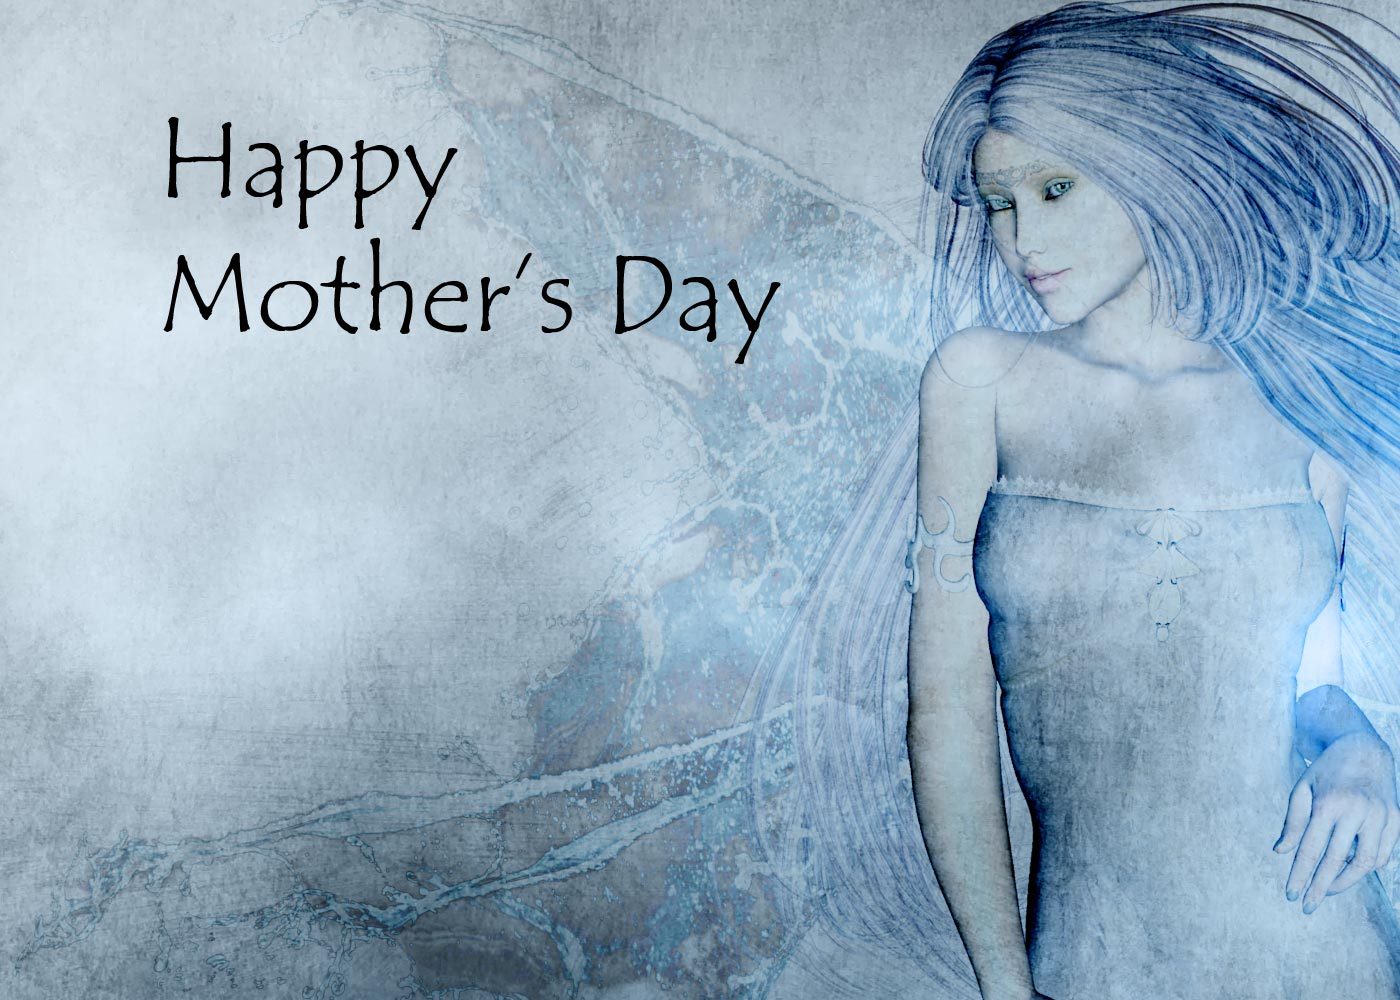 Blue Mother Day Pictures Viewing Gallery